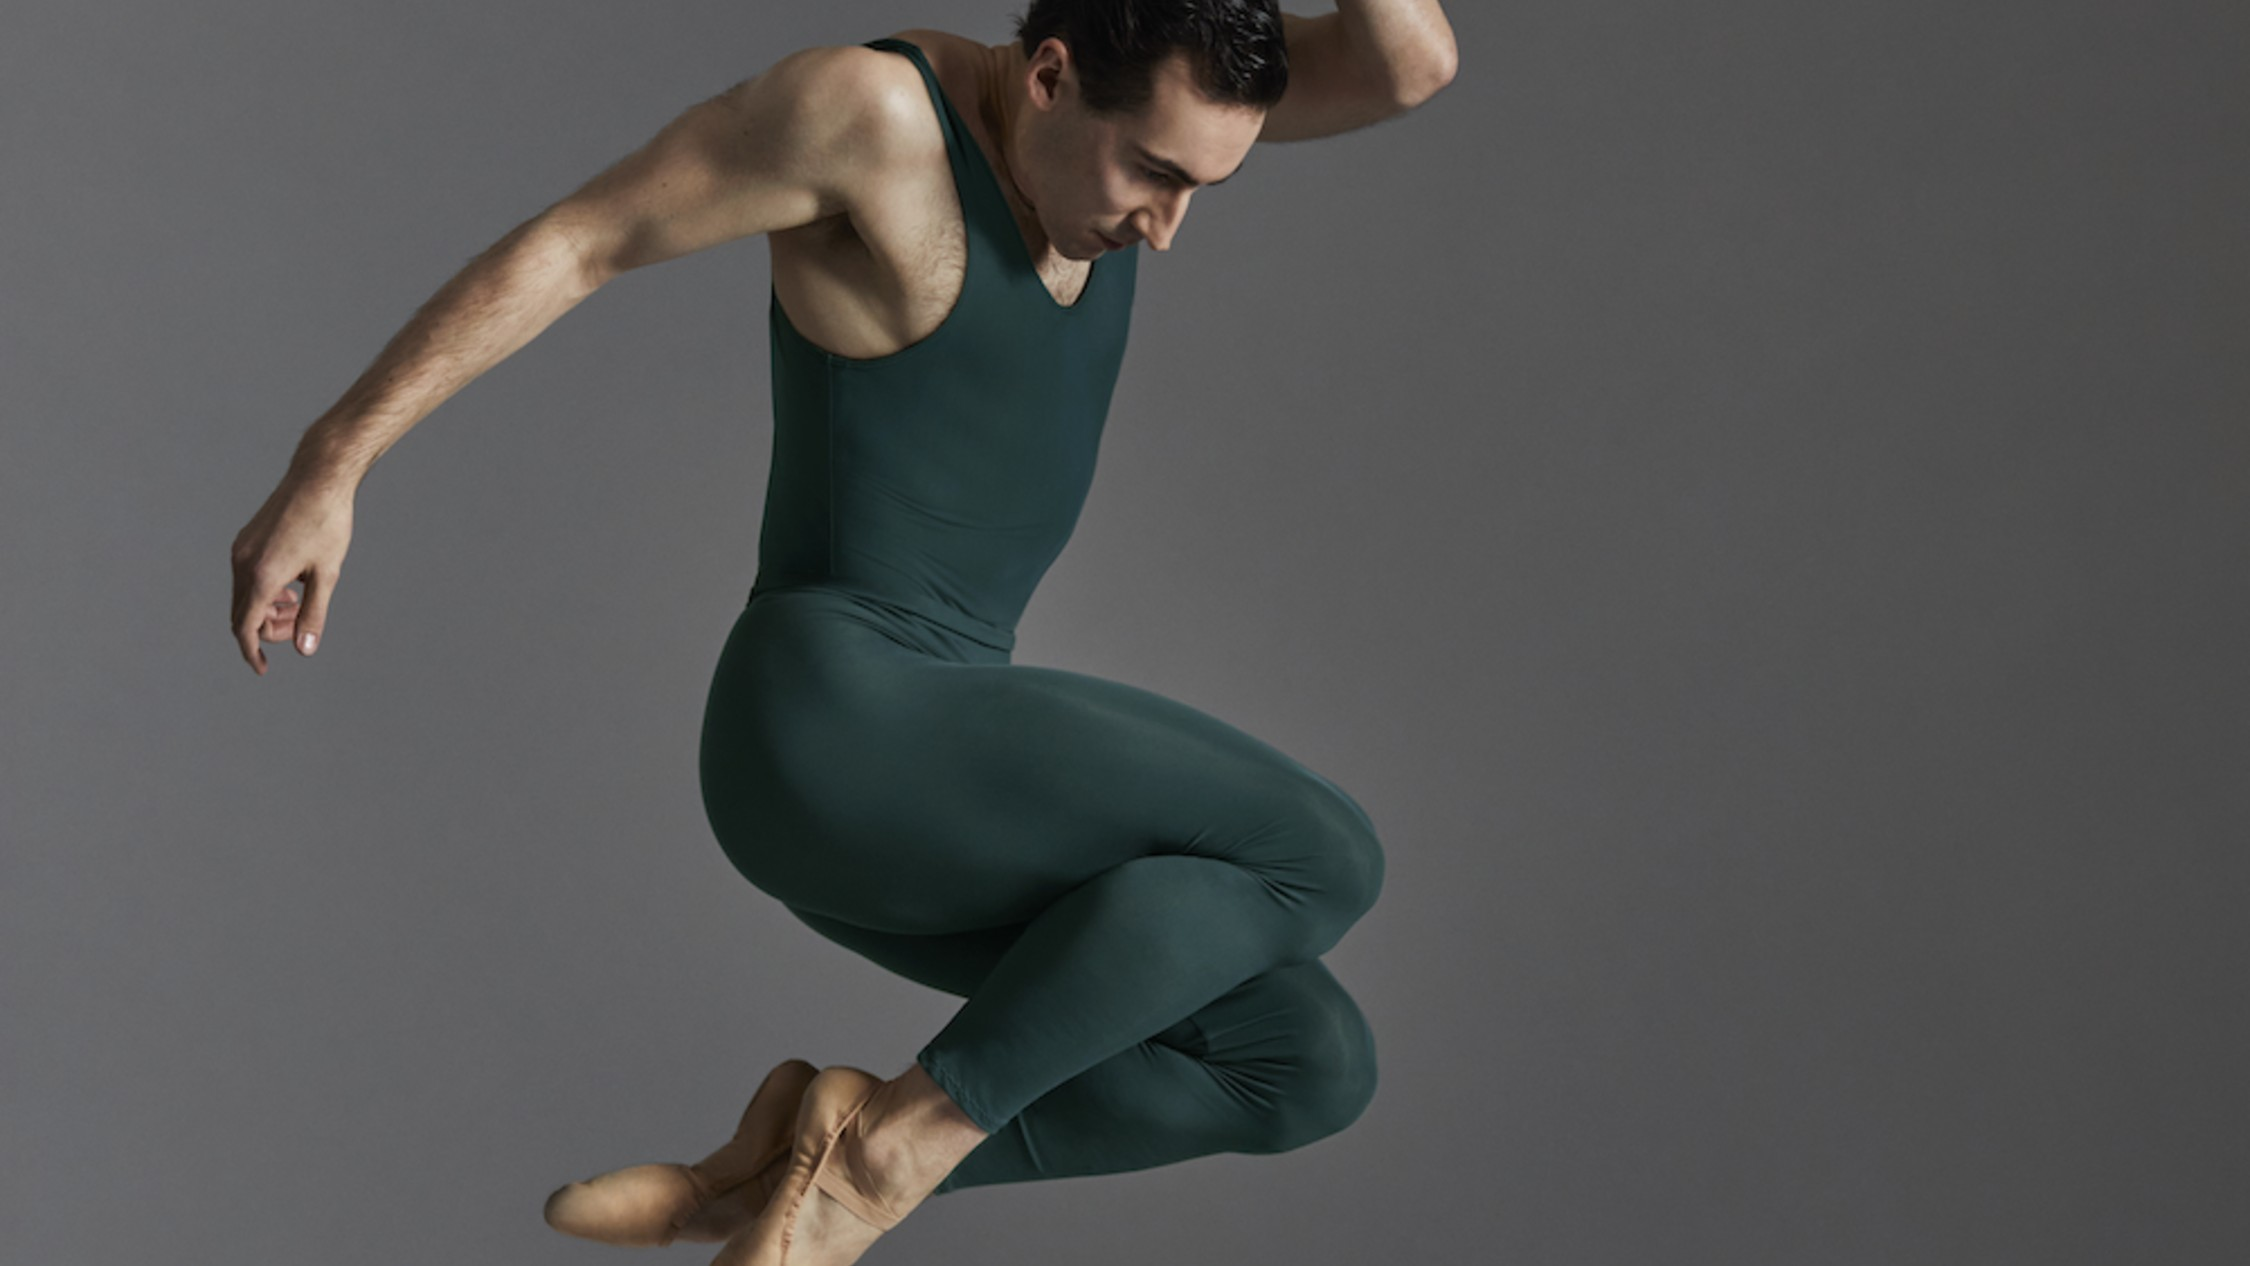 A male dancer in a green jump suit mid-leap